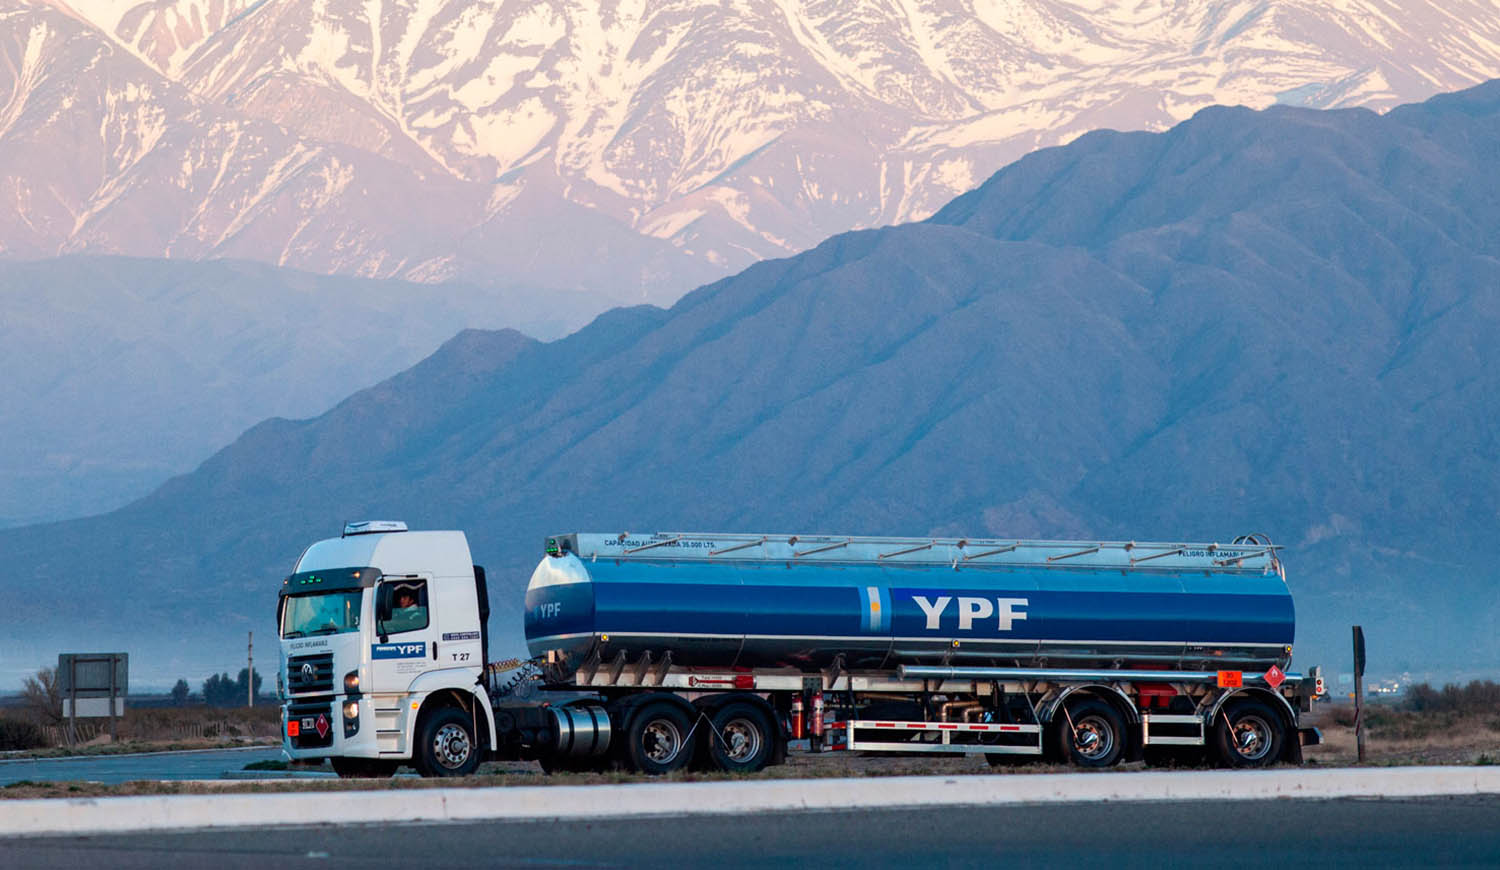 1529540430475Camion-ypf1